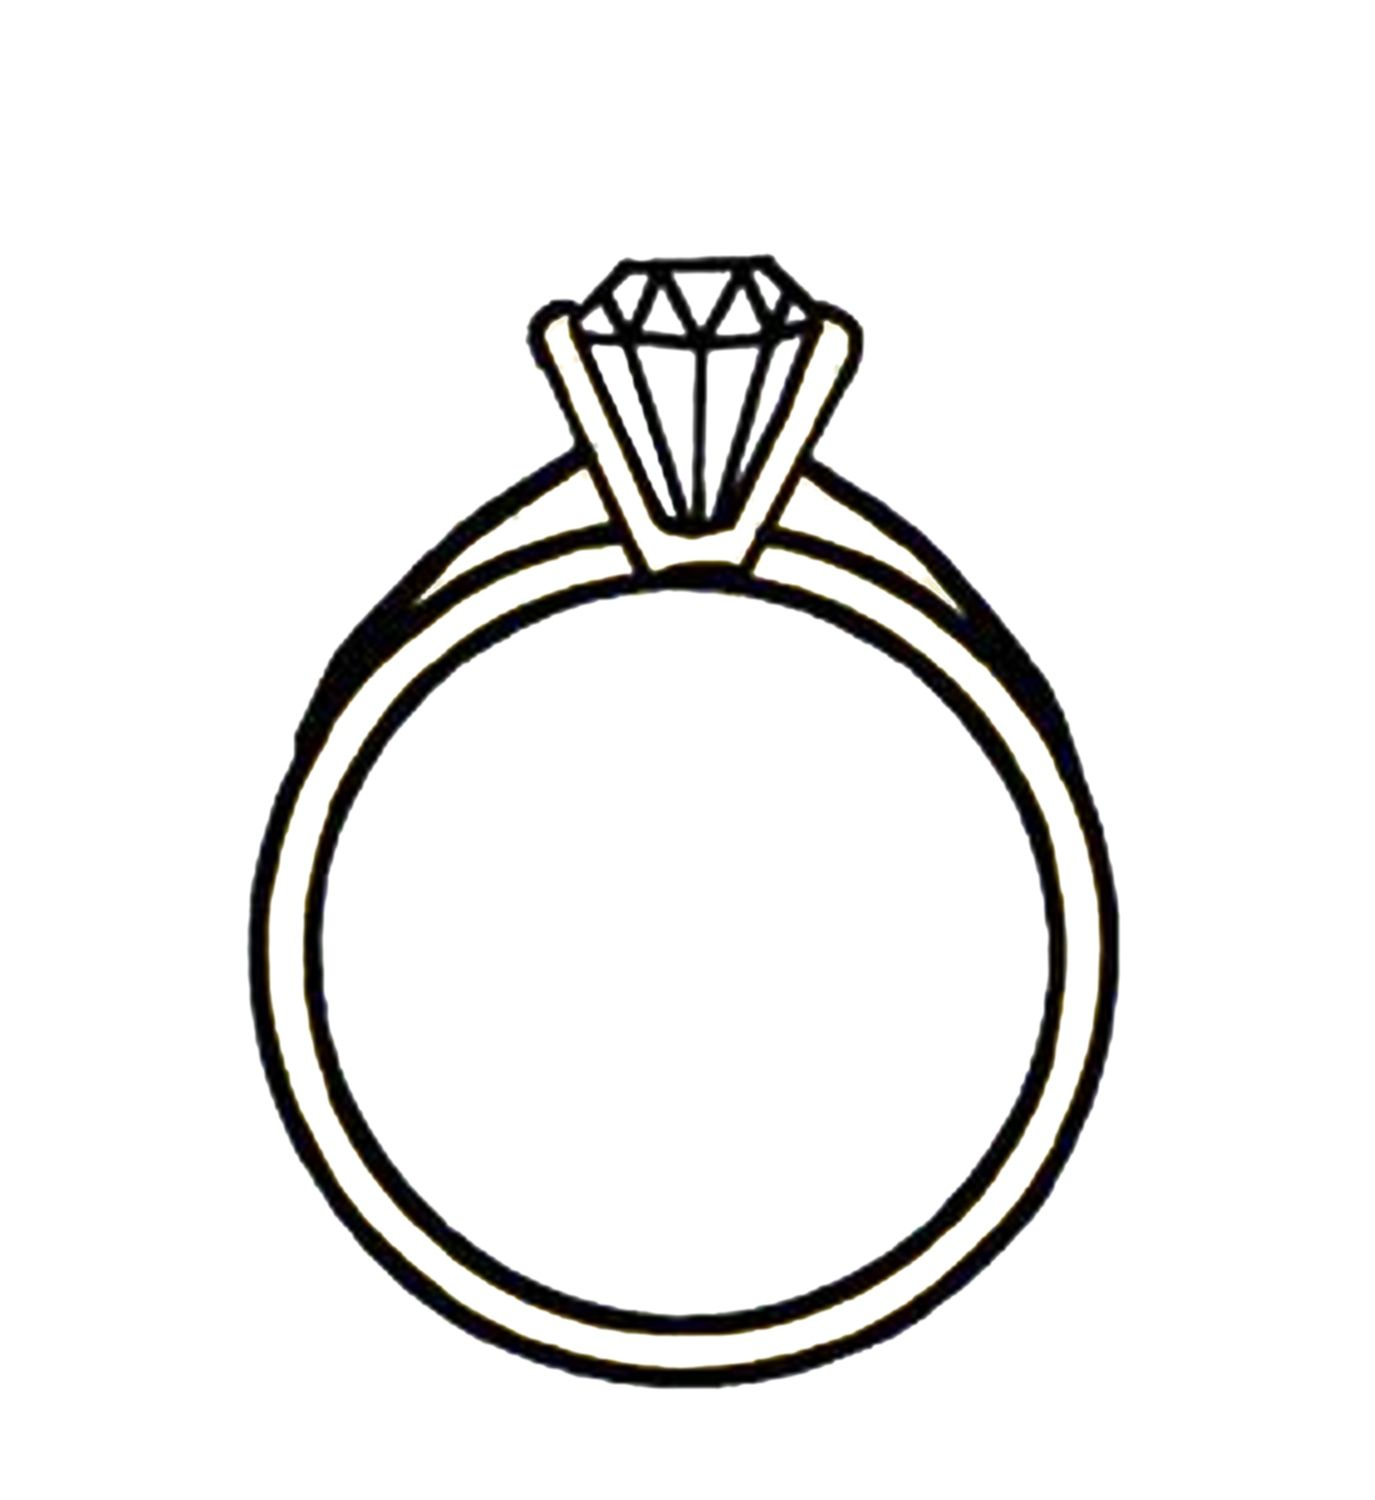 Wedding ring clipart drawings vector freeuse stock Pin by Hendro birowo on elegant wedding ring sets ... vector freeuse stock